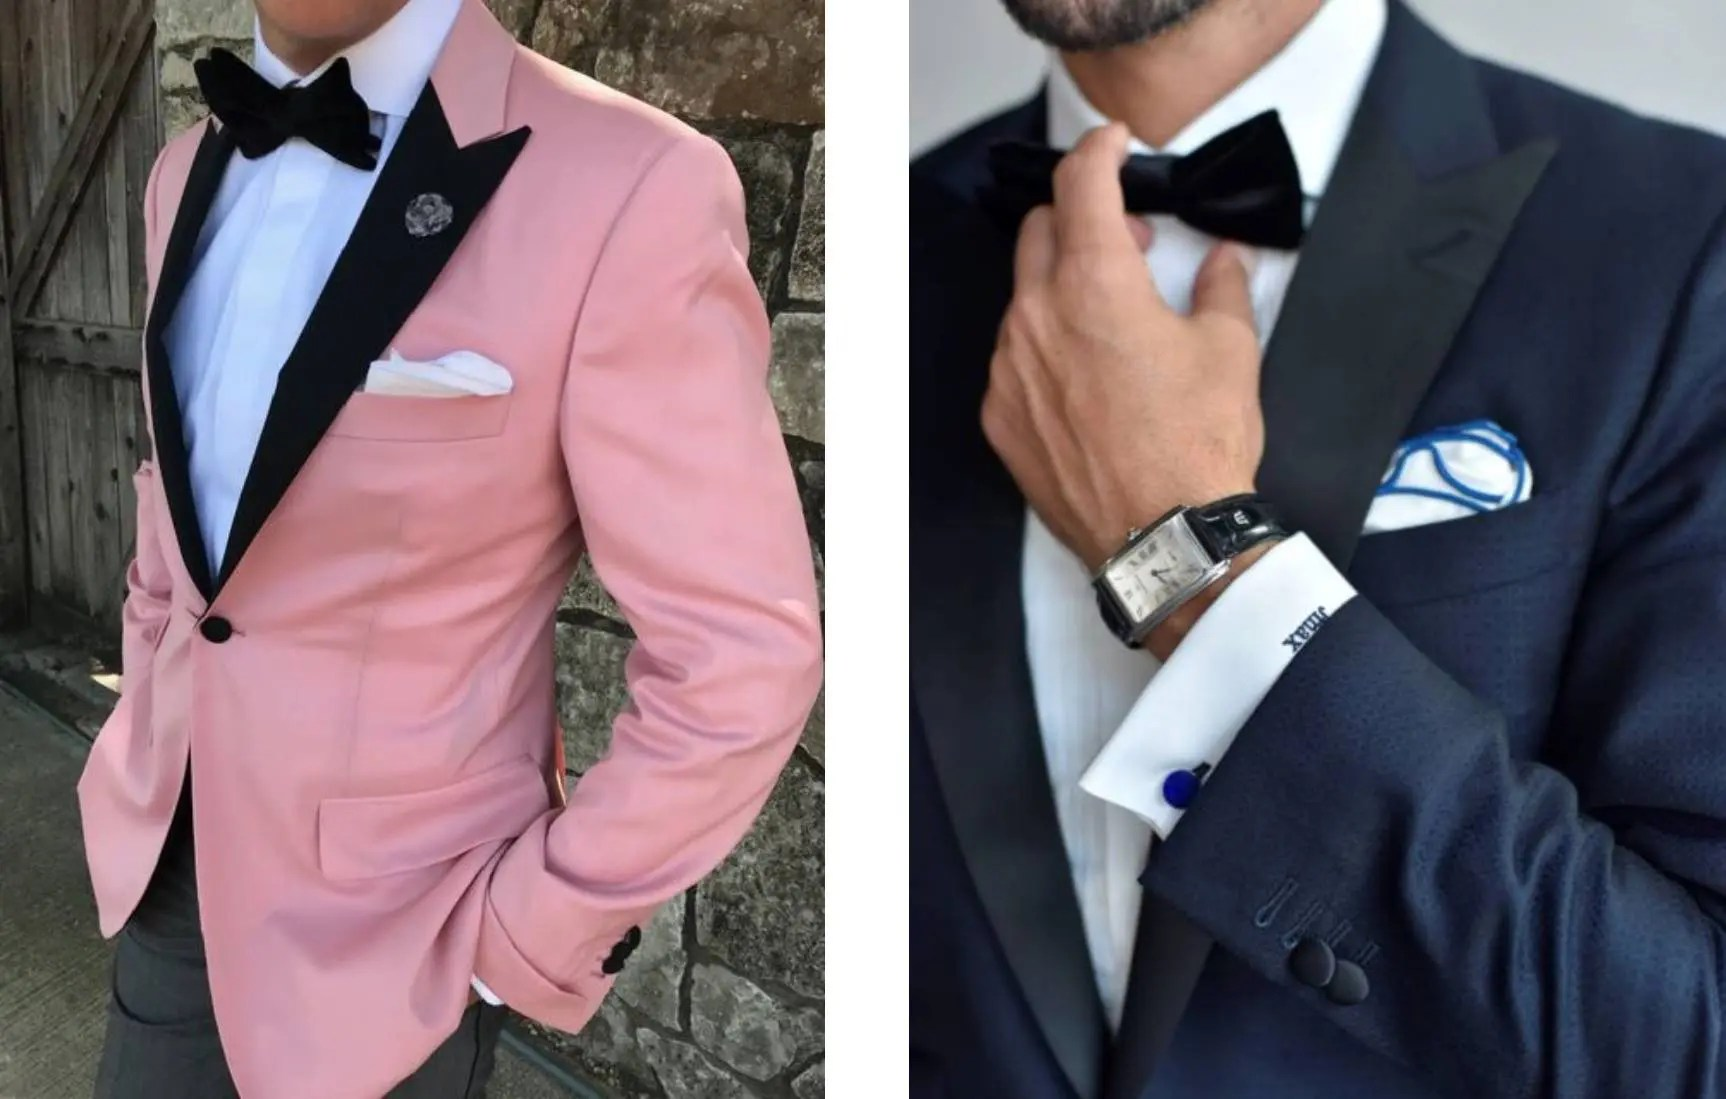 semi formal vs formal outfits